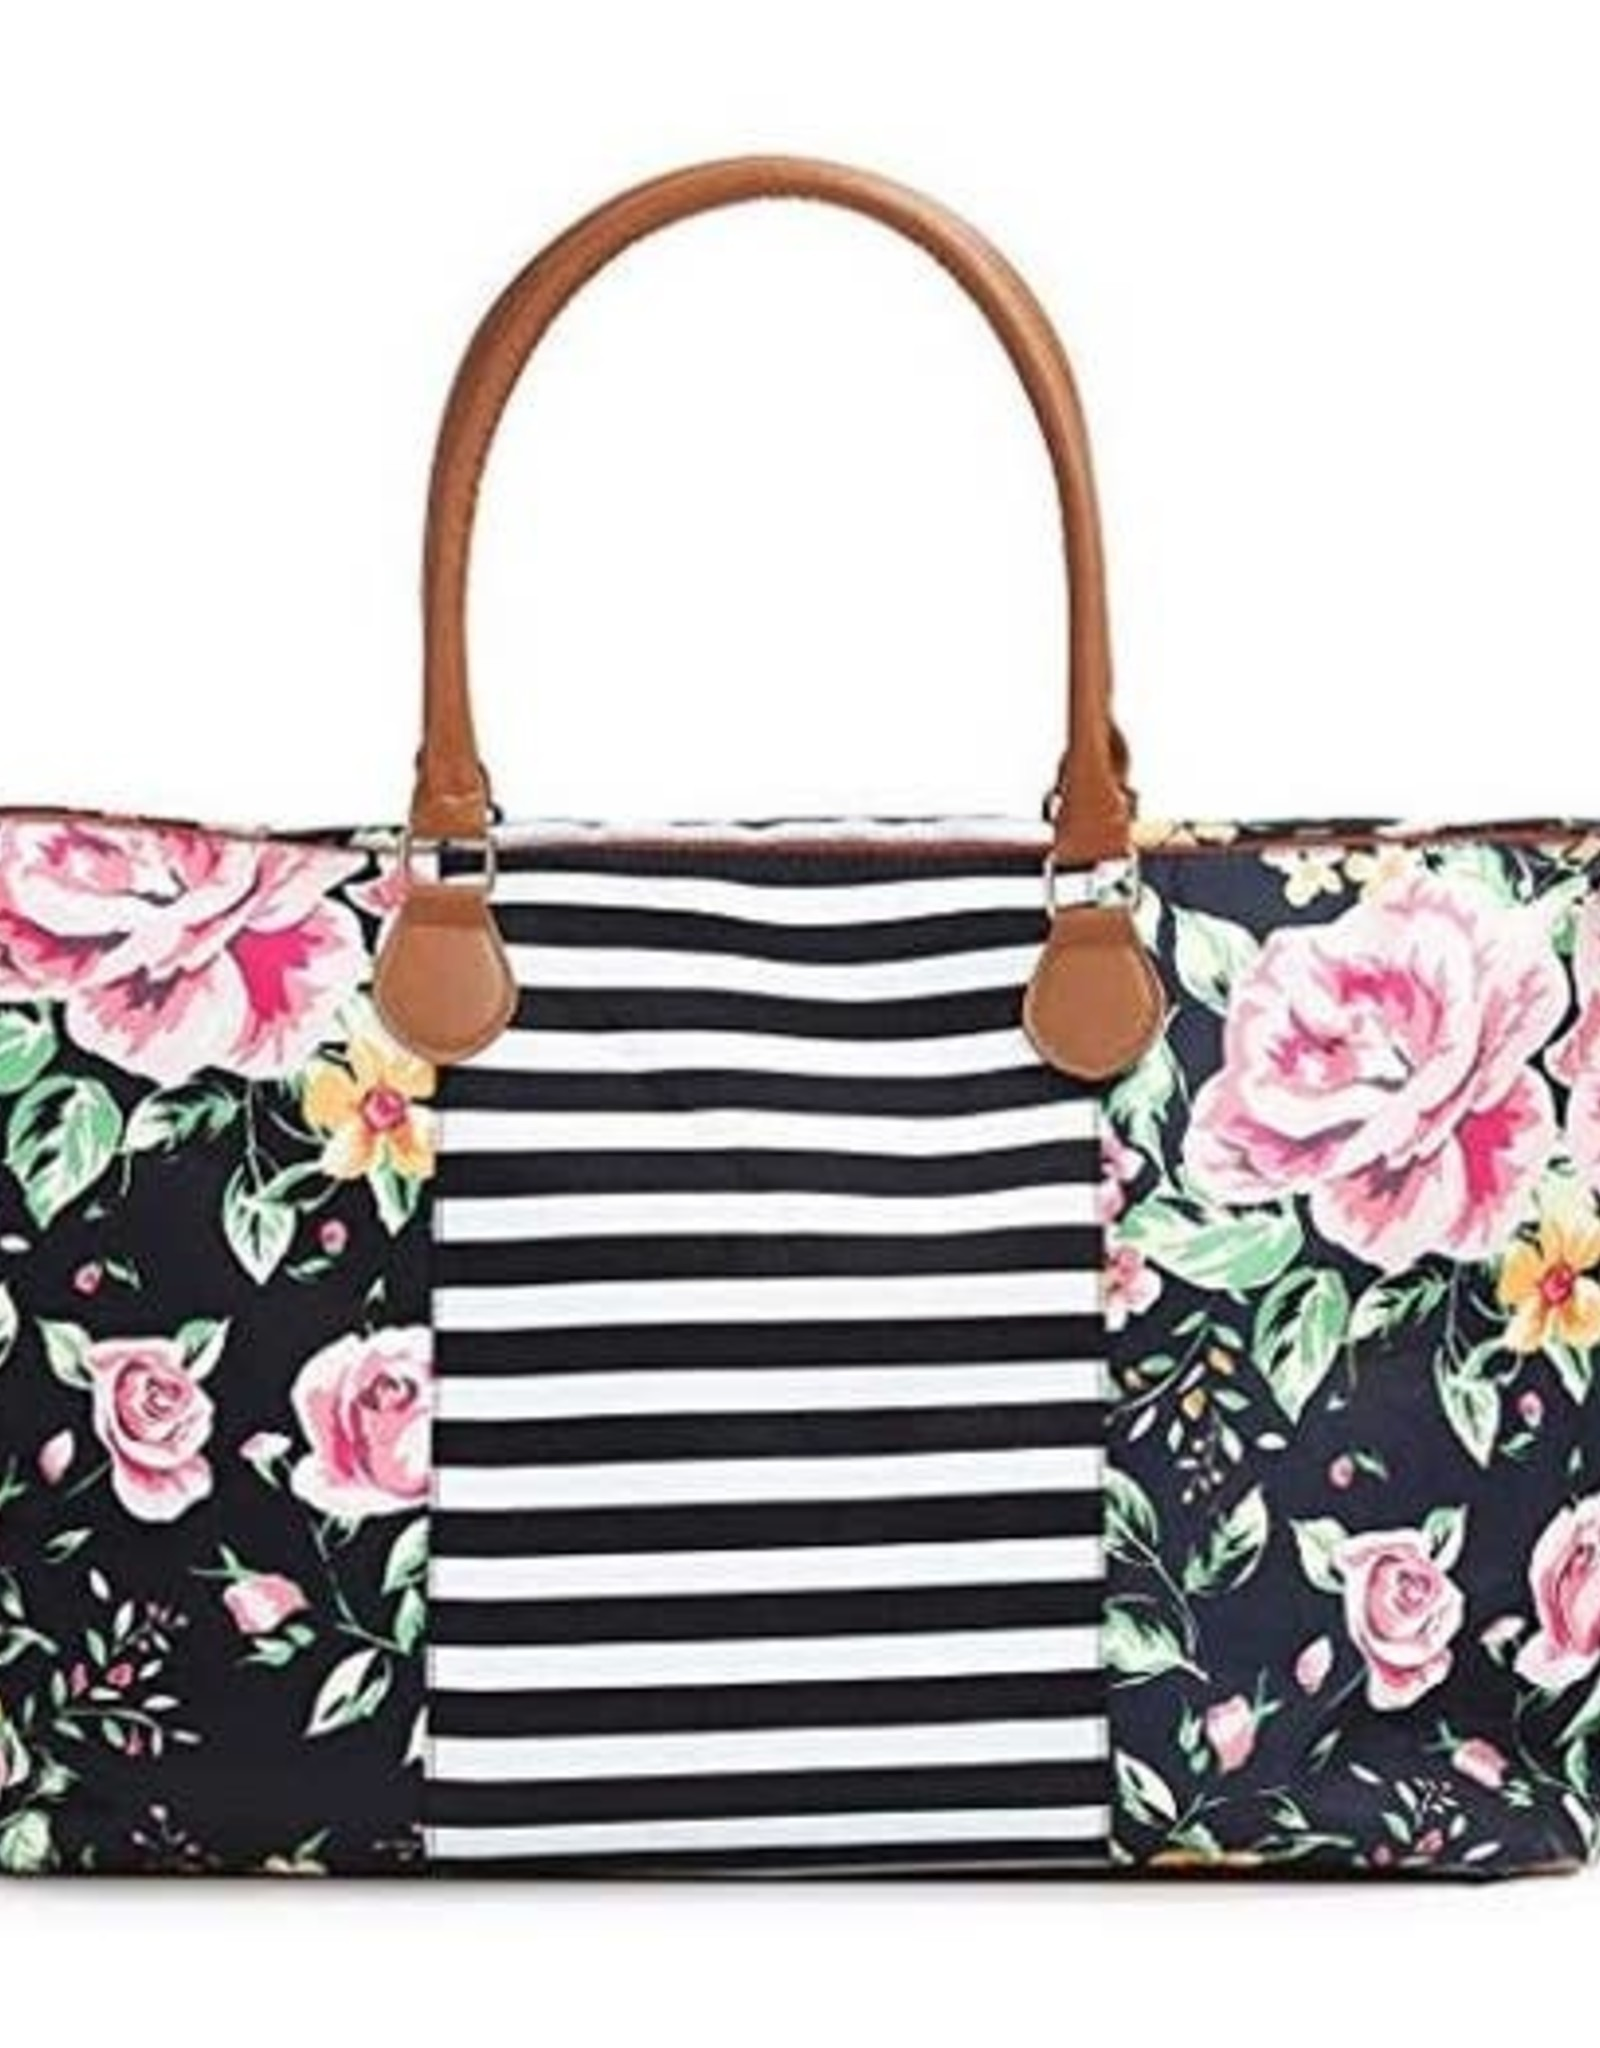 Wink Floral Striped Weekender Bag